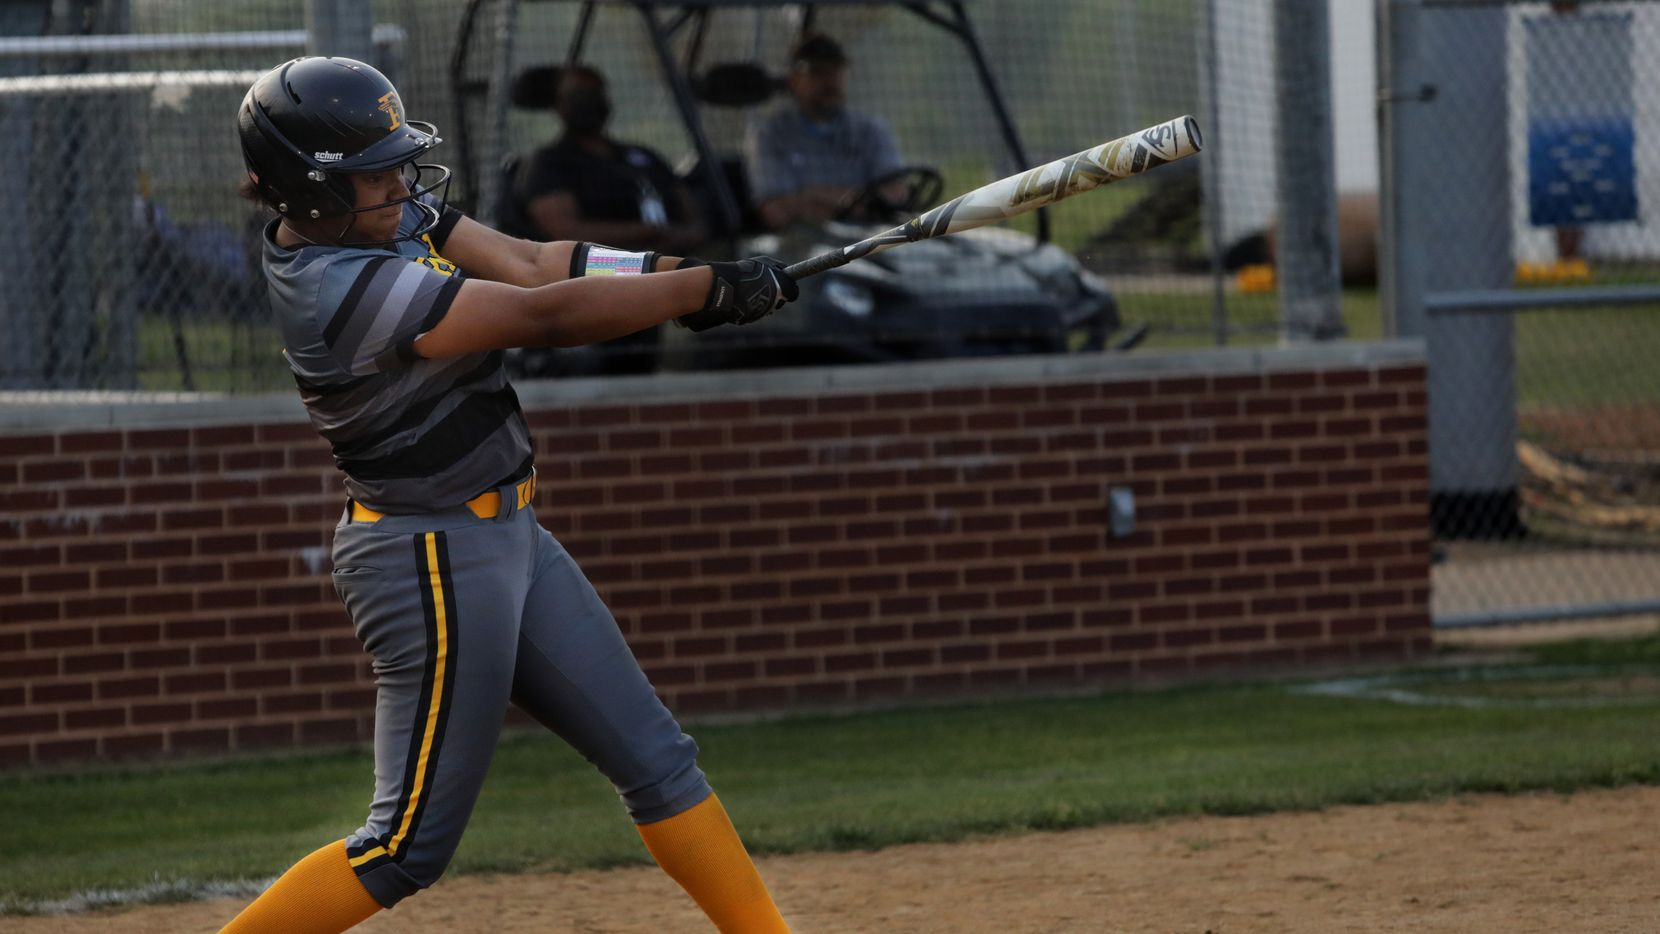 Vanessa Hollingsworth swings for the ball during a softball game between Forney at North Forney at North Forney High School in Forney, TX, on Apr. 9, 2021.